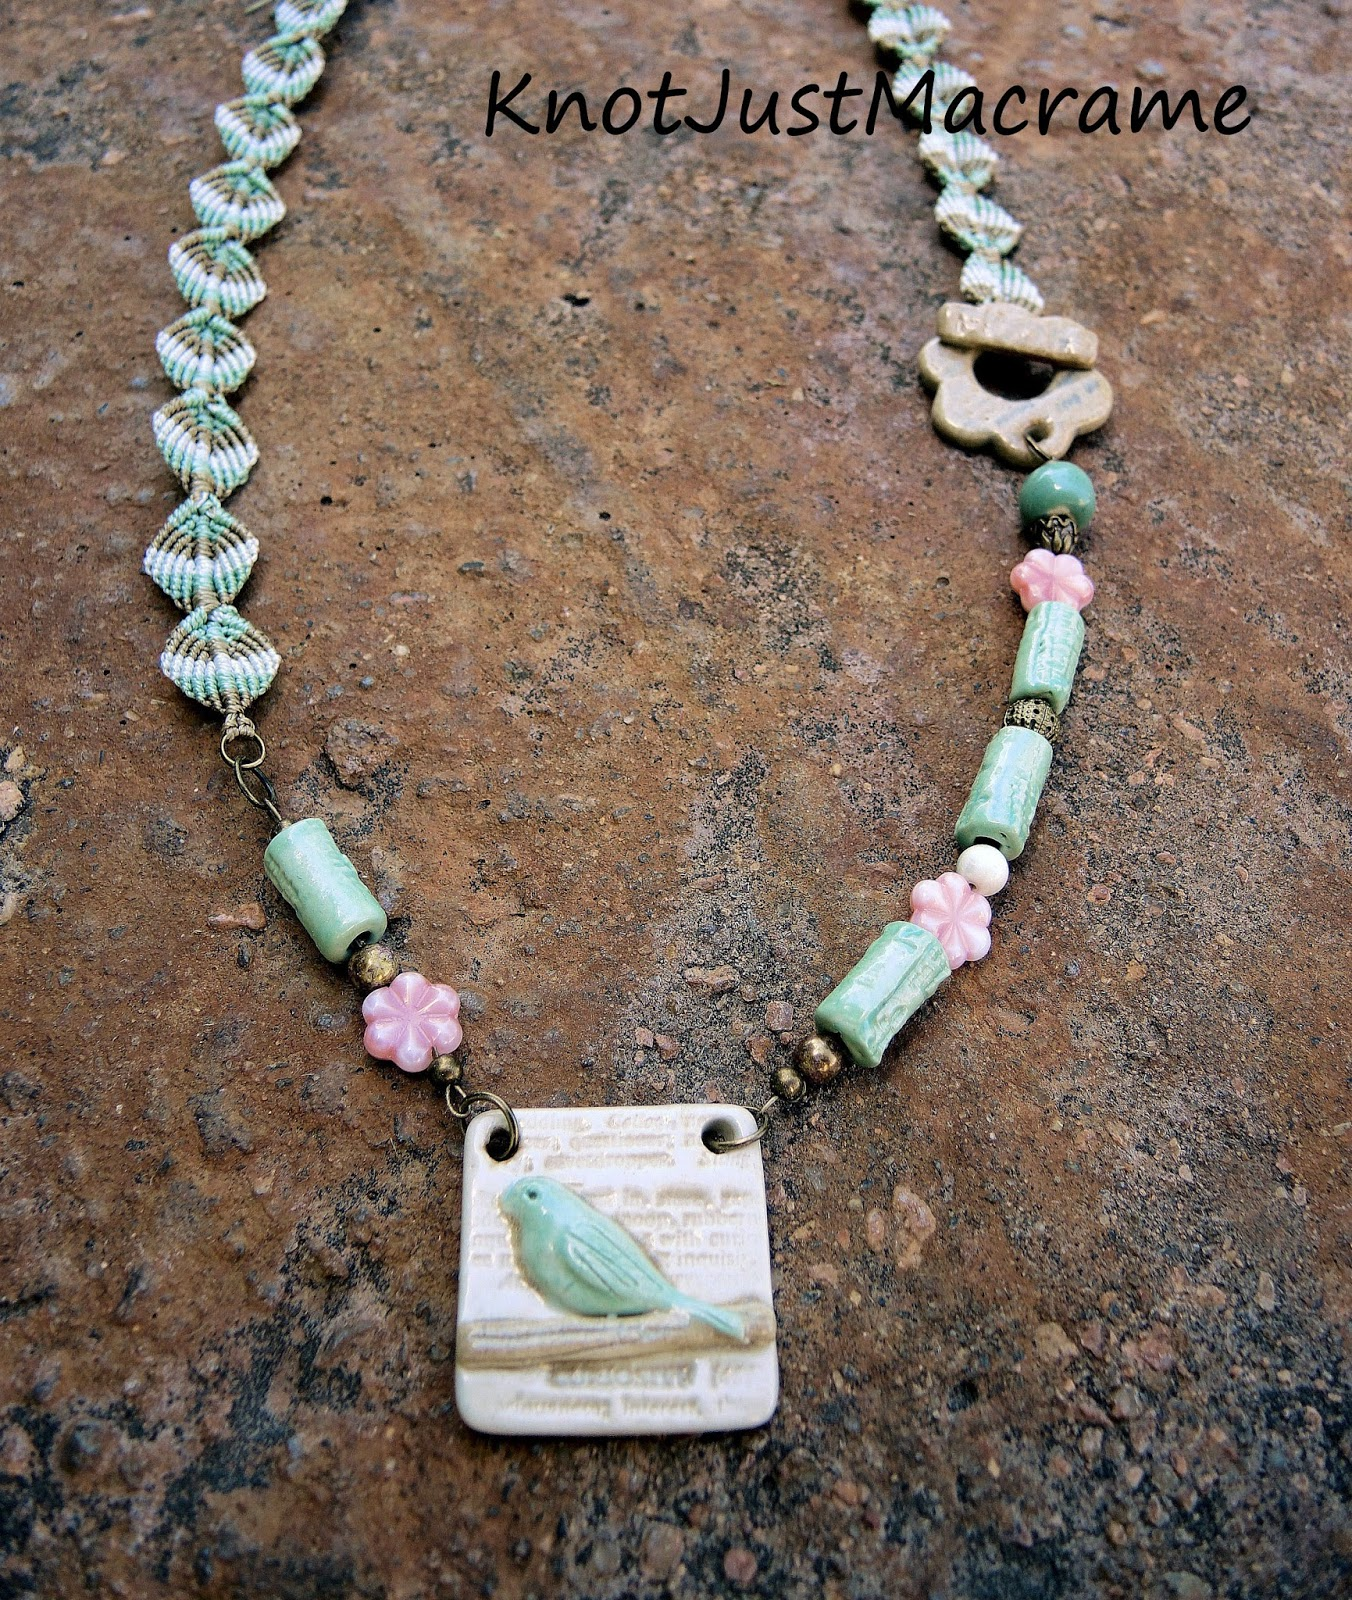 Necklace with micro macrame by Sherri Stokey and ceramic components by Blu Mu